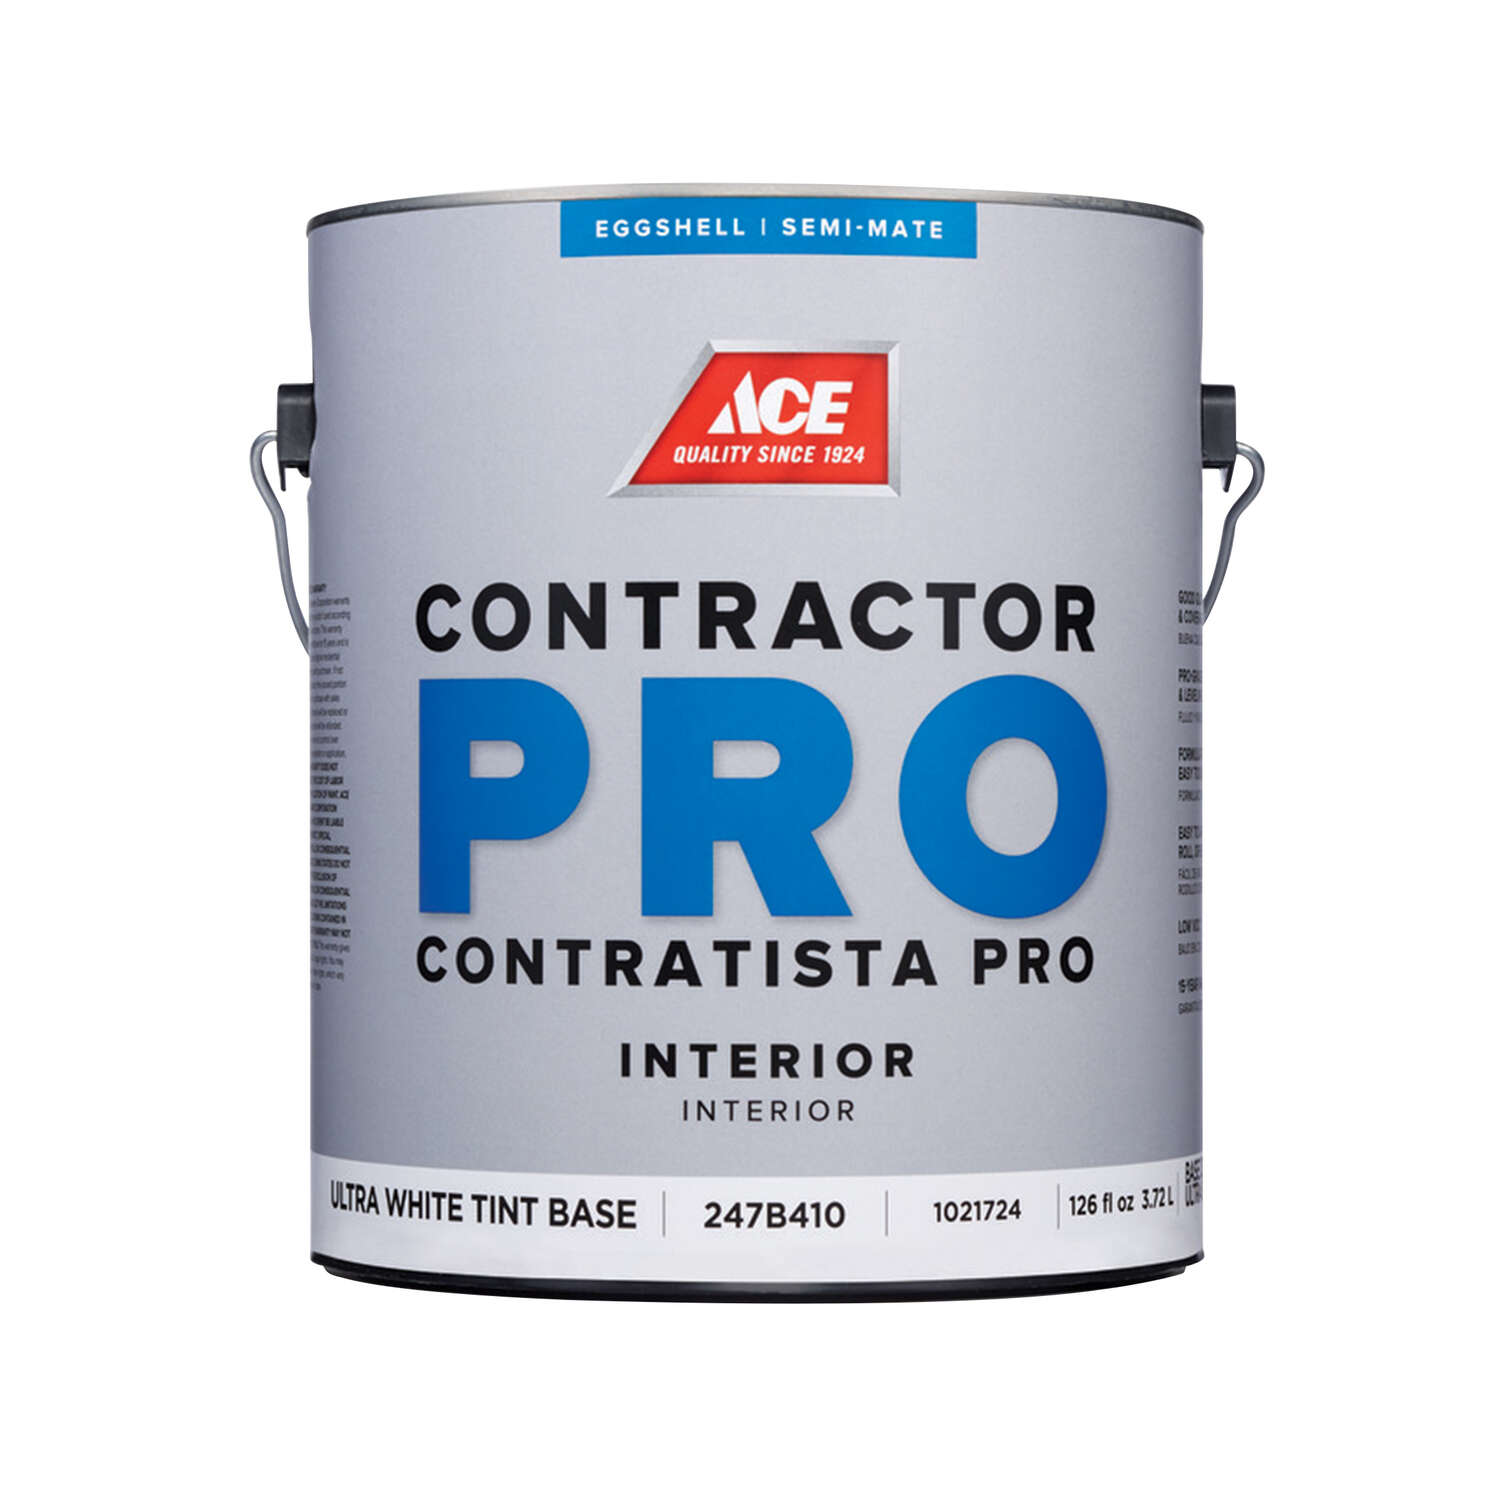 Ace  Contractor Pro  Eggshell  Tint Base  Ultra White Base  Paint  Interior  1 gal.